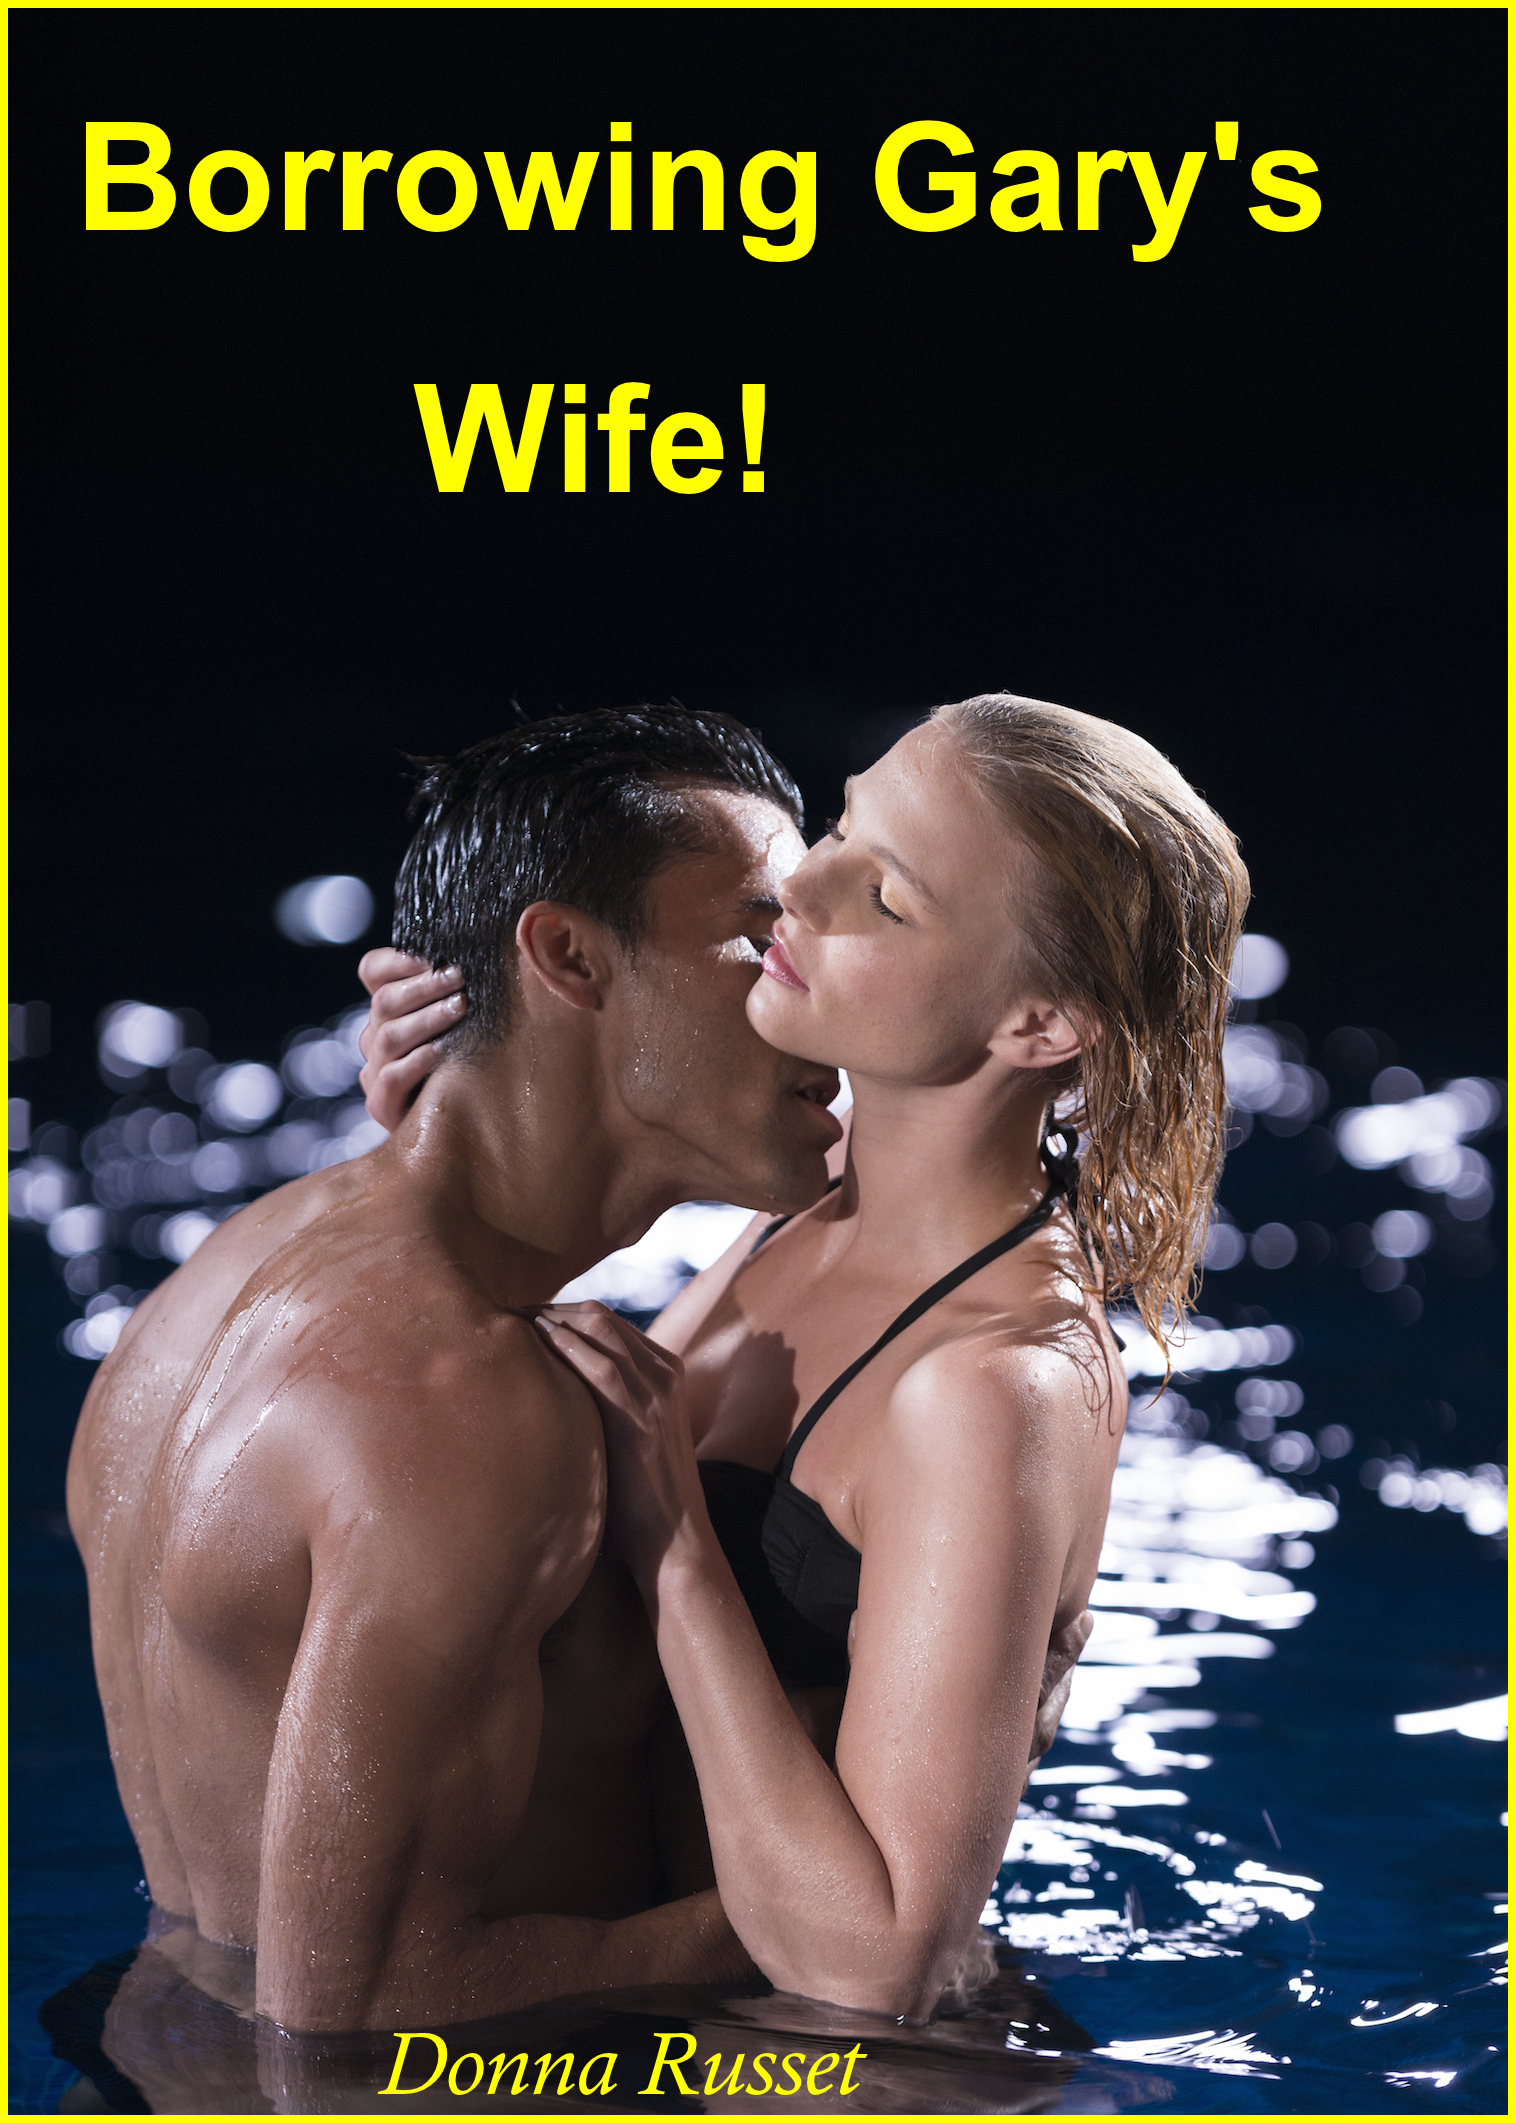 argumentative essay without romantic love there is no marriage